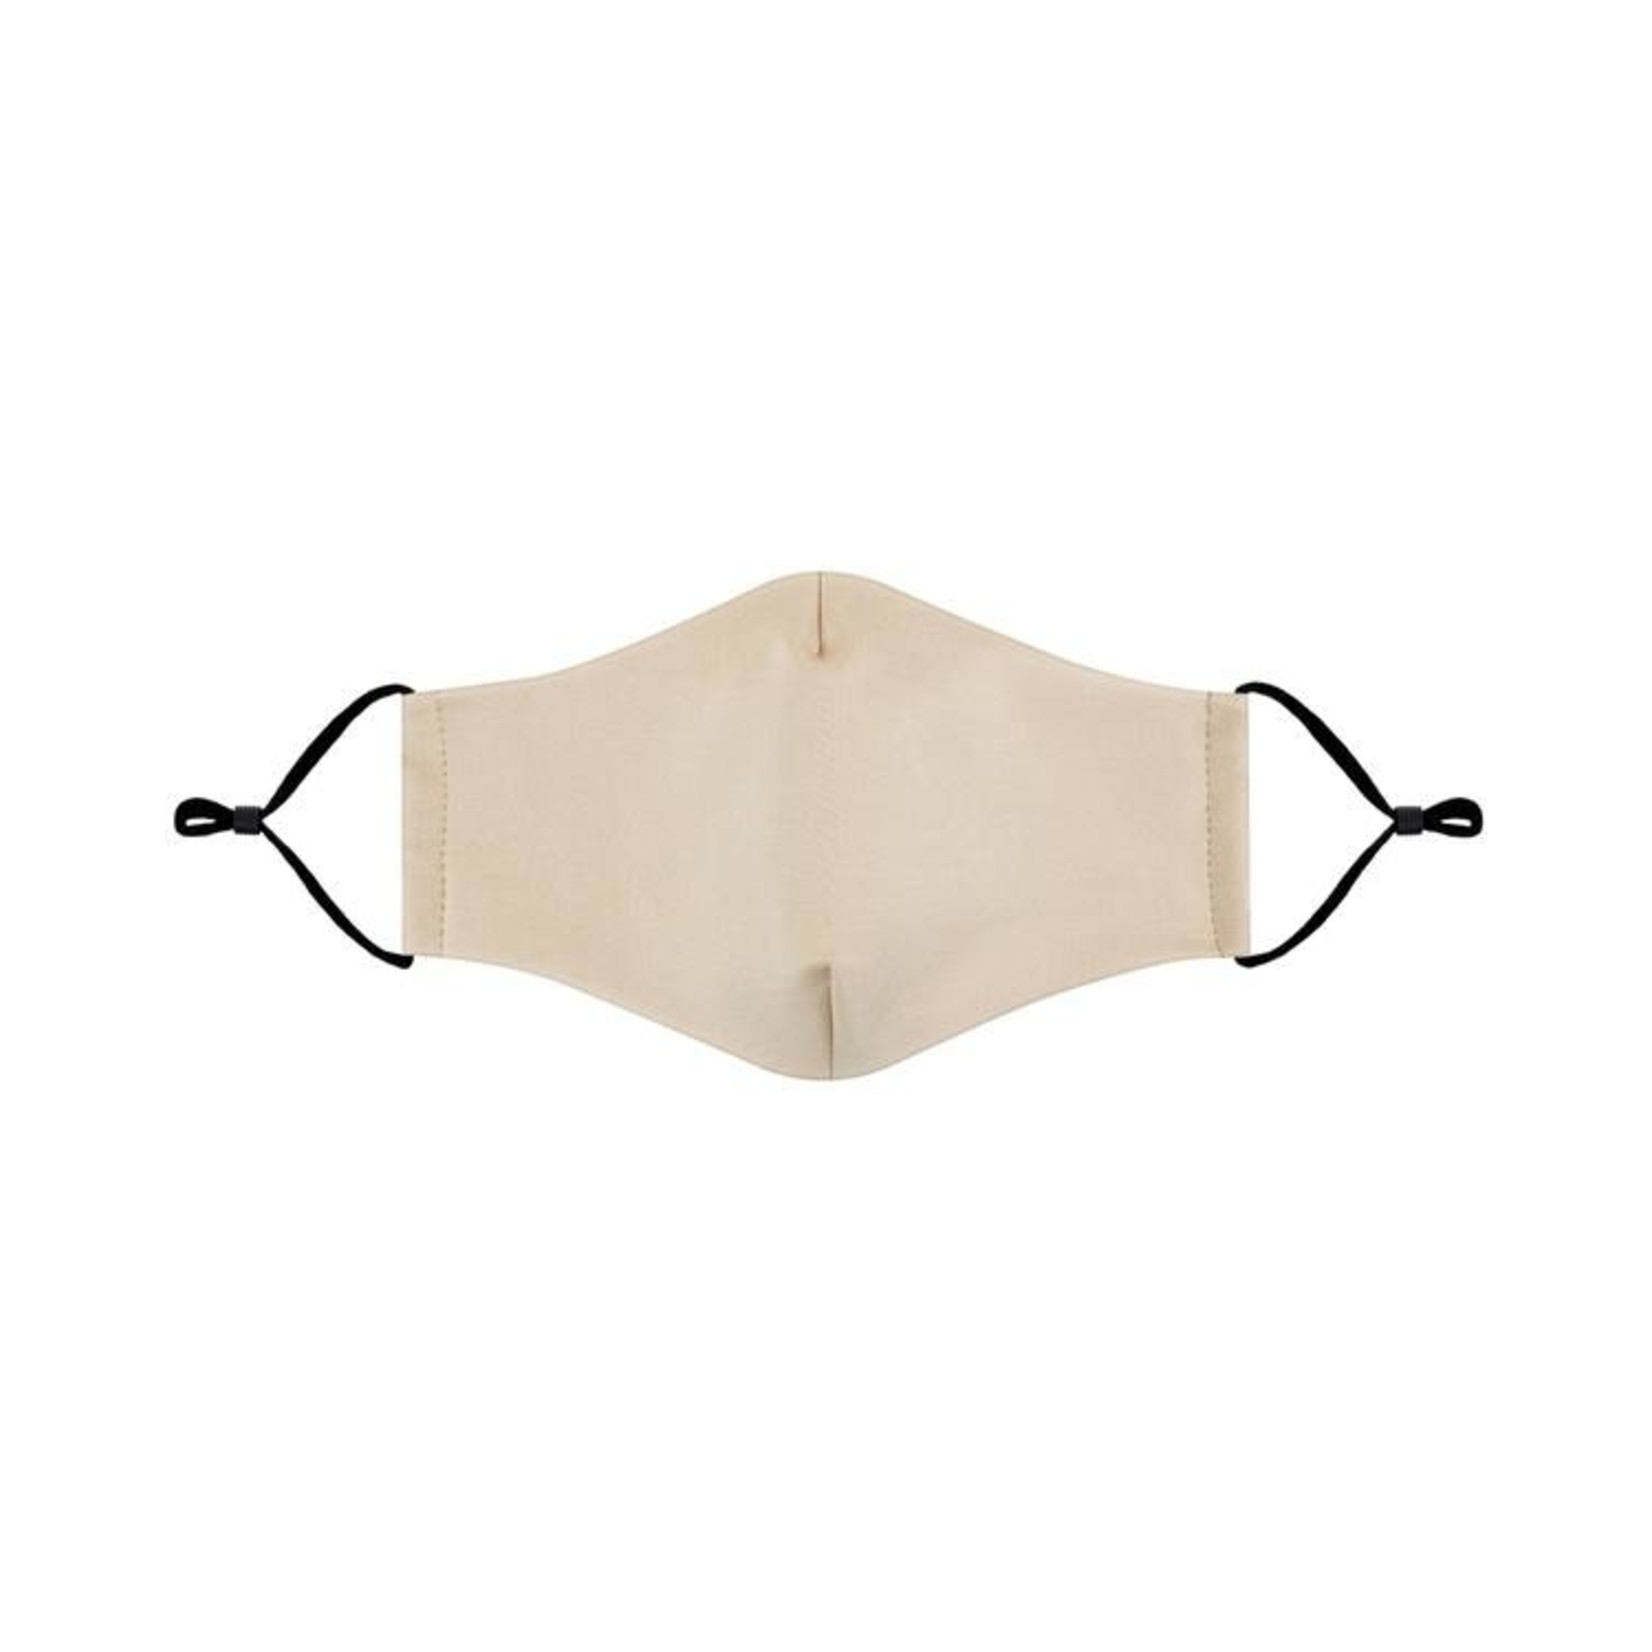 Solid beige cloth mask